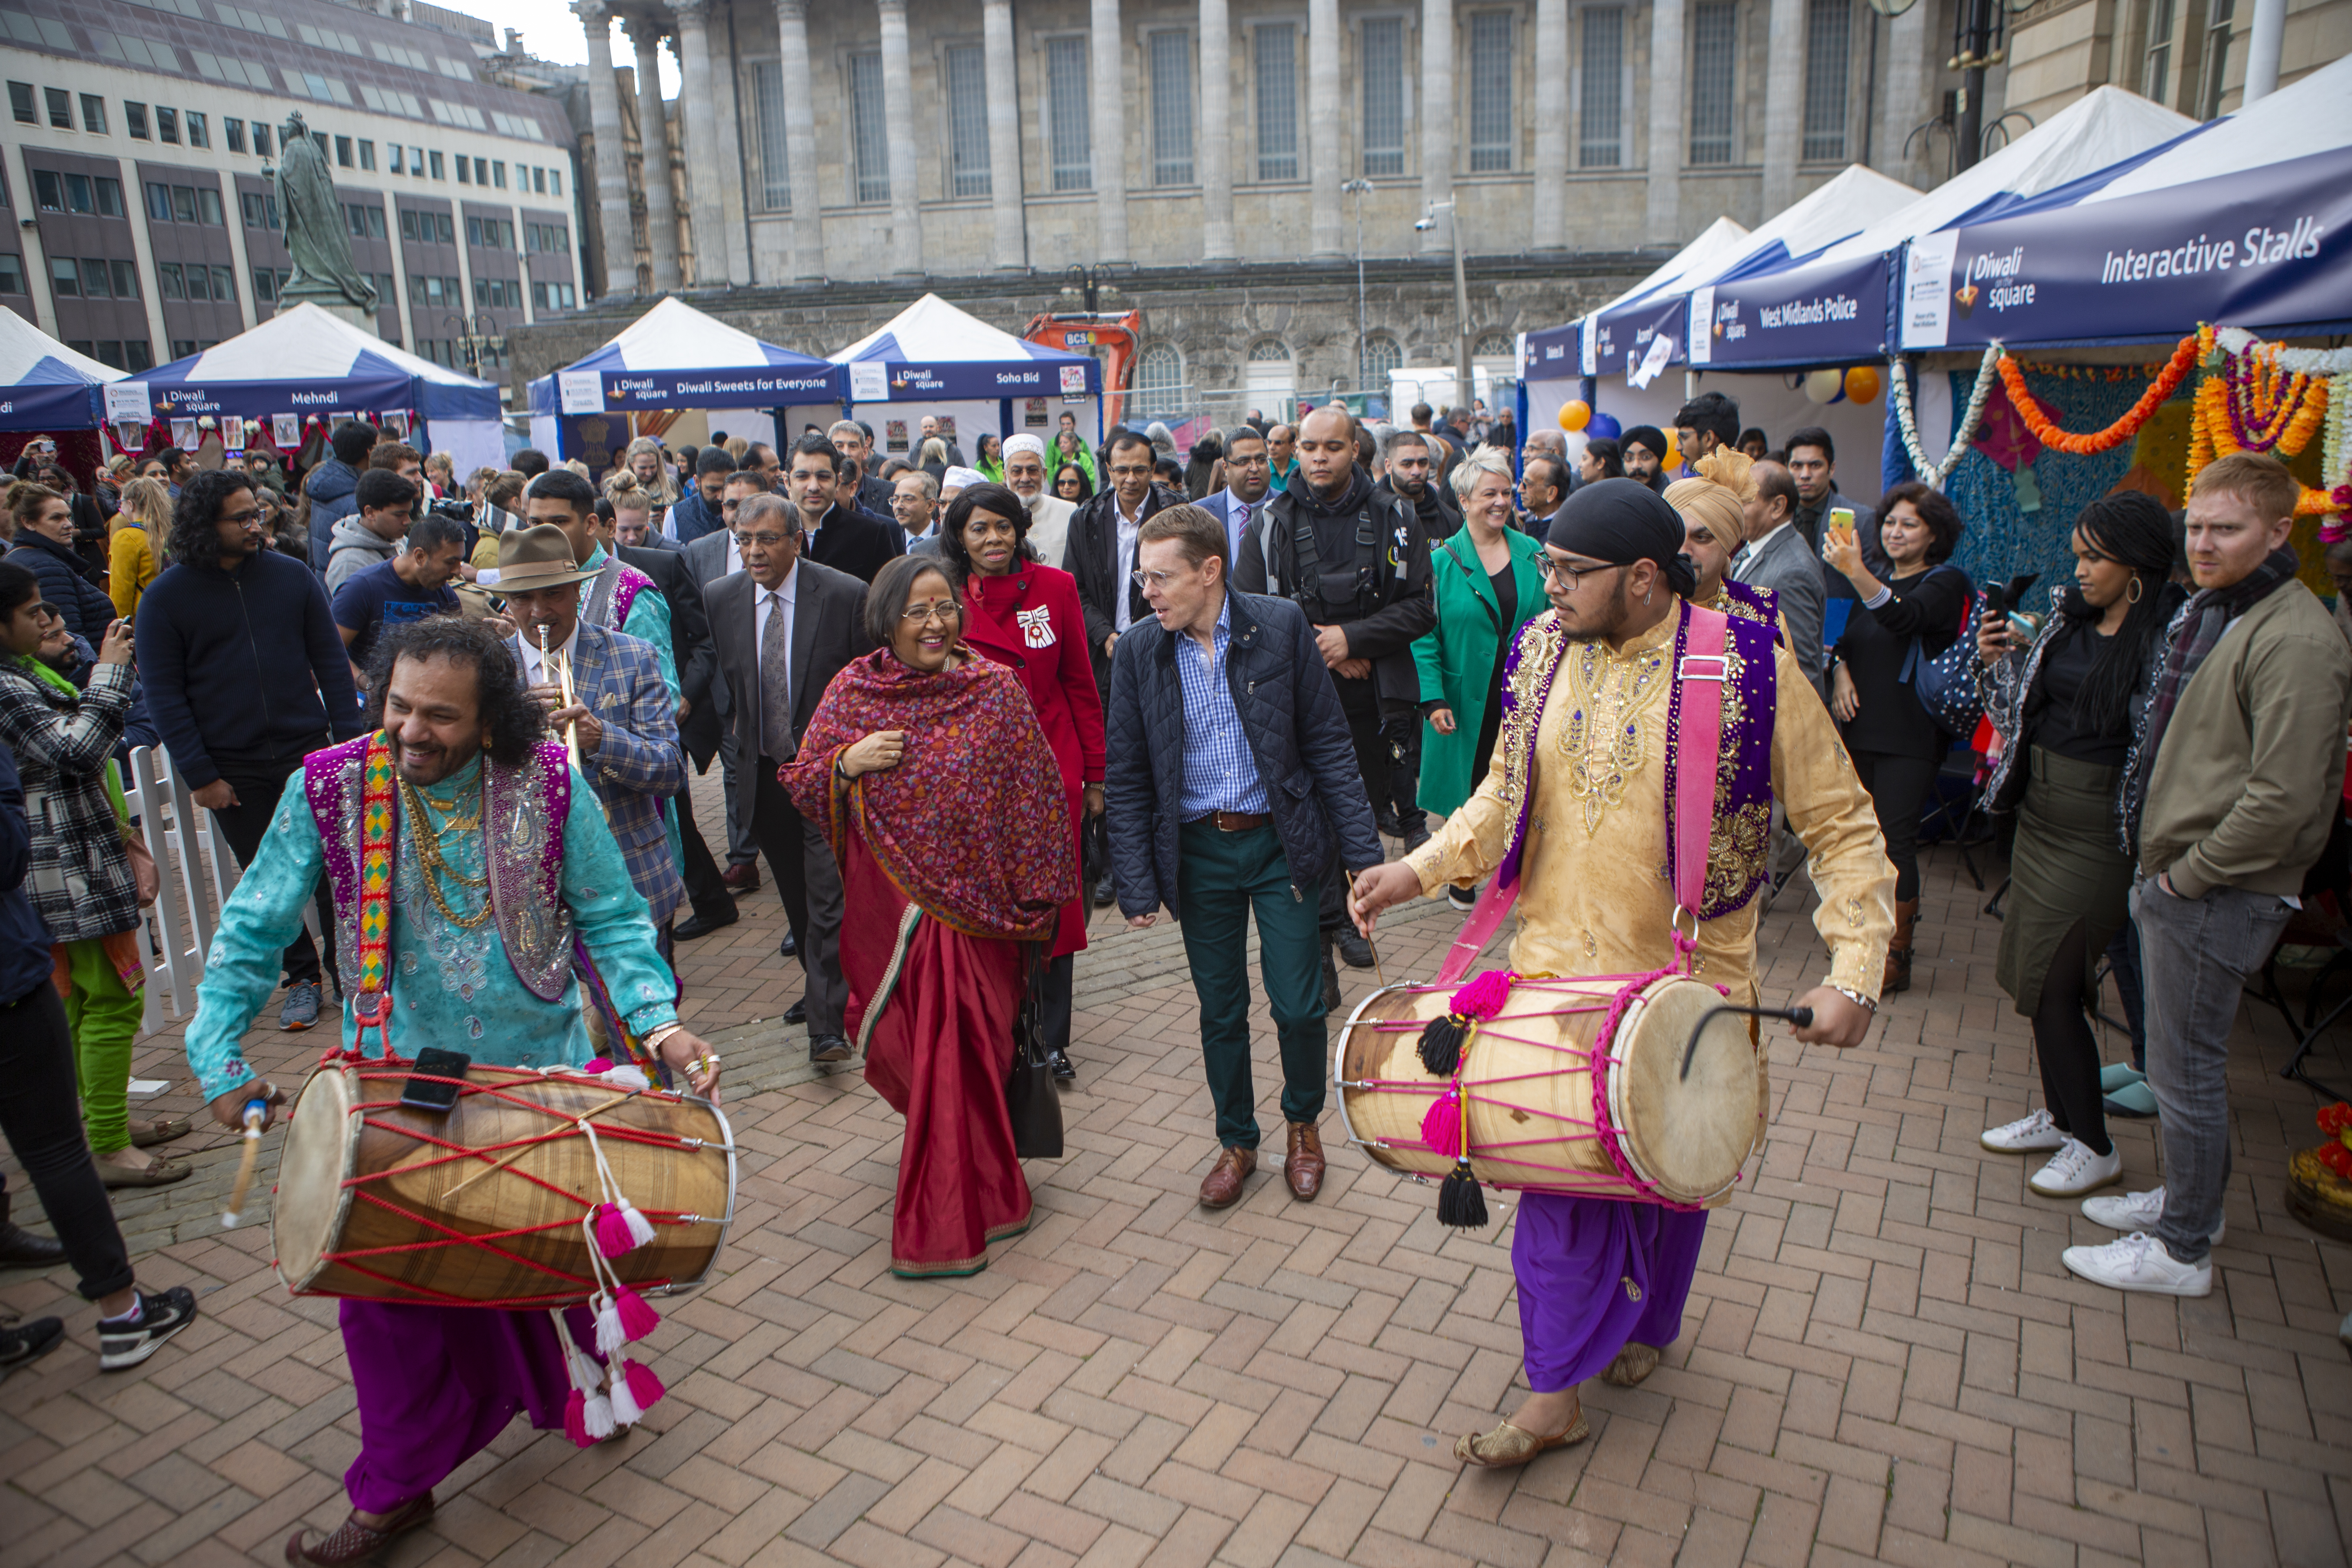 File photo: Outgoing high commissioner of India to UK, Ruchi Ghanashyam, and Mayor Andy  Street at Victoria Square, Birmingham, being escorted by 'Dhol' performers.